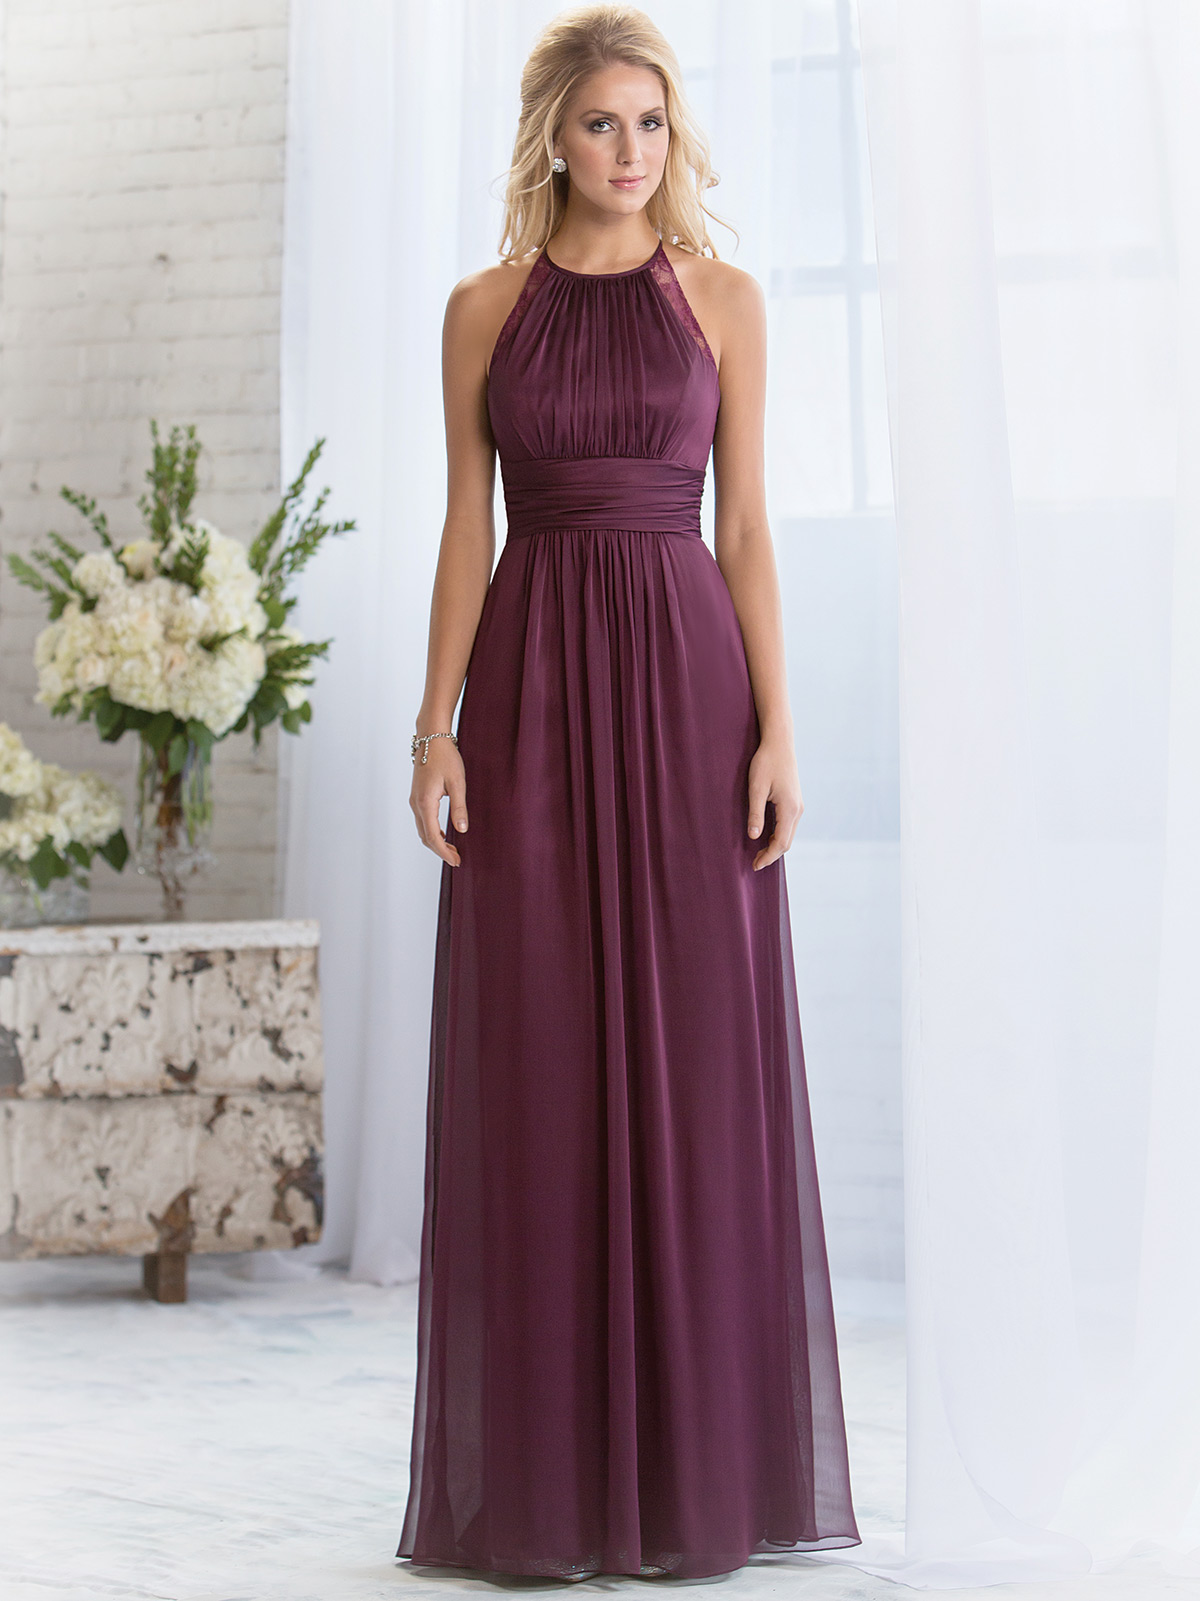 Belsoie bridesmaid dress l164060 dimitradesigns halter pleated belsoie bridesmaids dress by jasmine l164060 ombrellifo Image collections